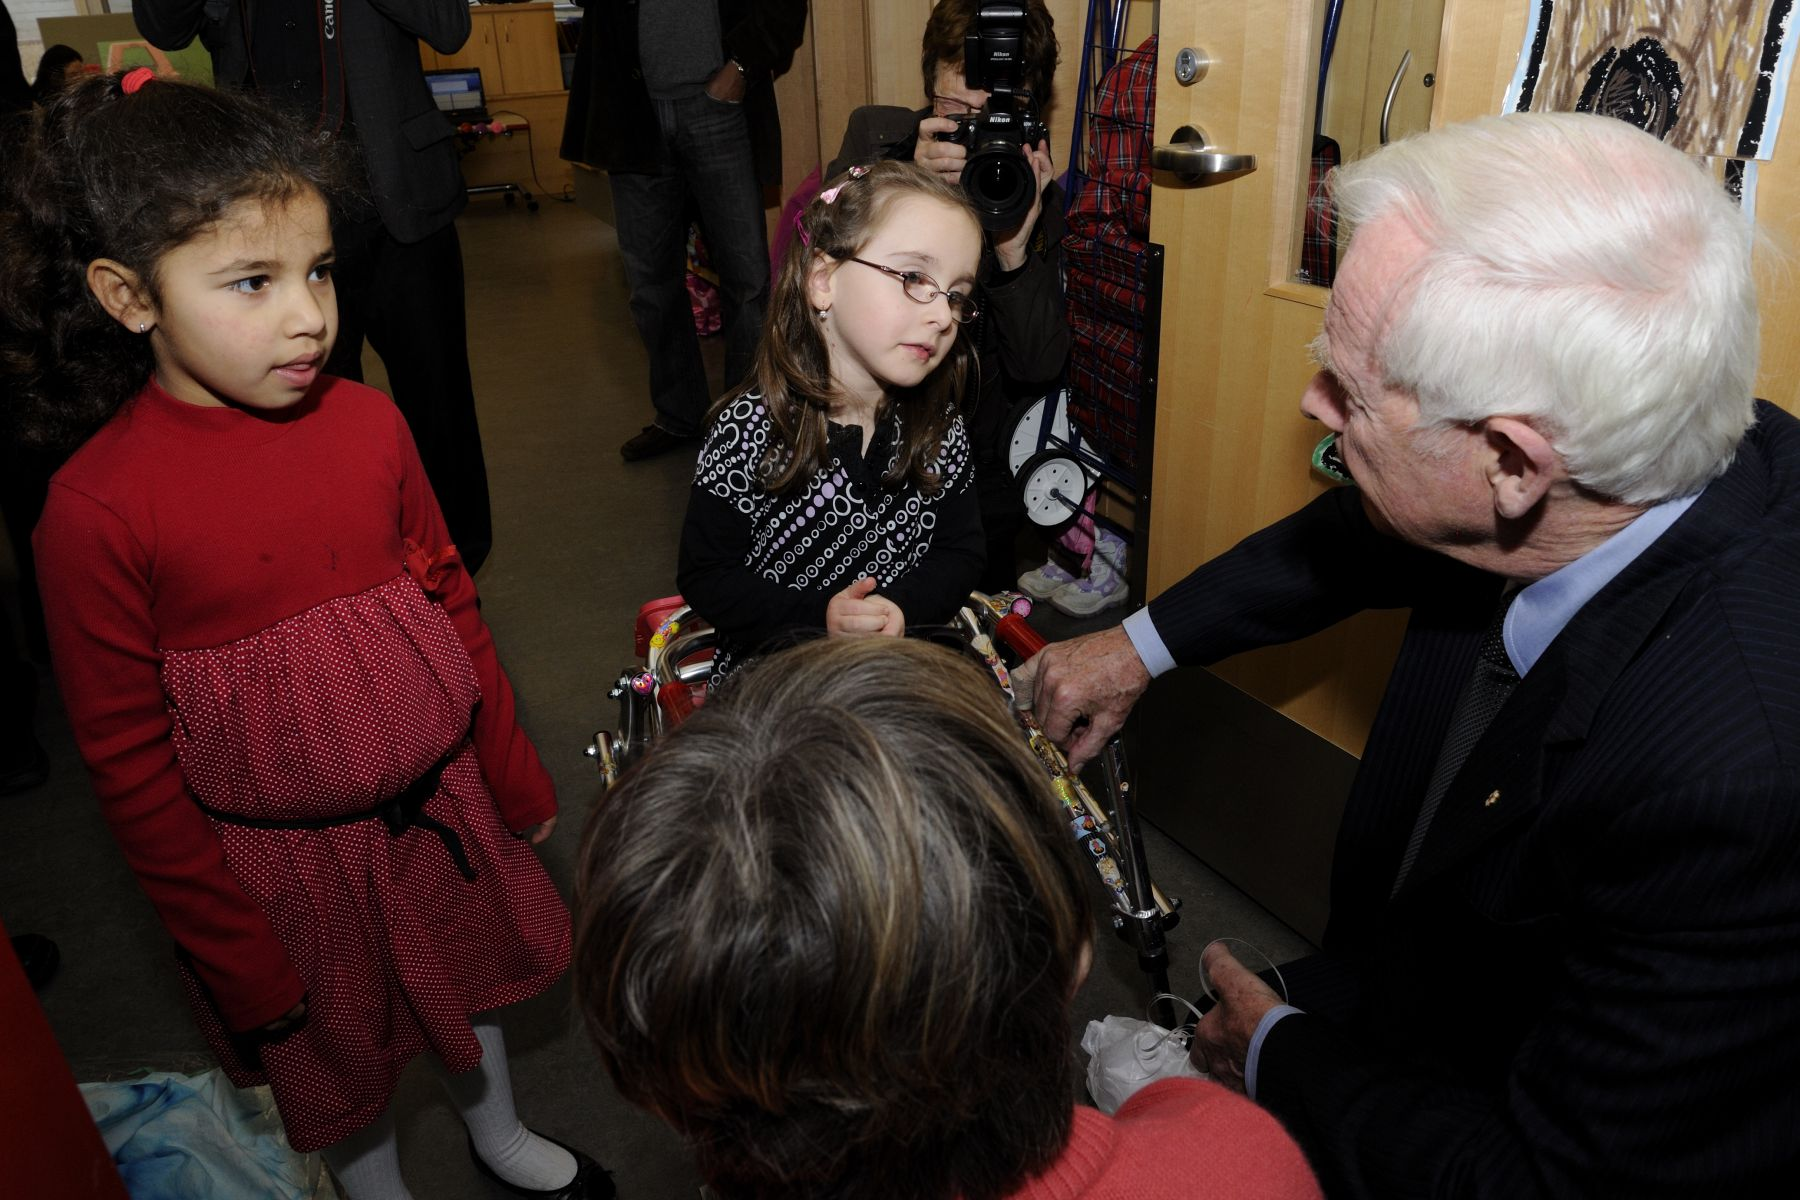 Their Excellencies spoke with two young girls who receive special care from Holland Bloorview Kids Rehabilitation Hospital.